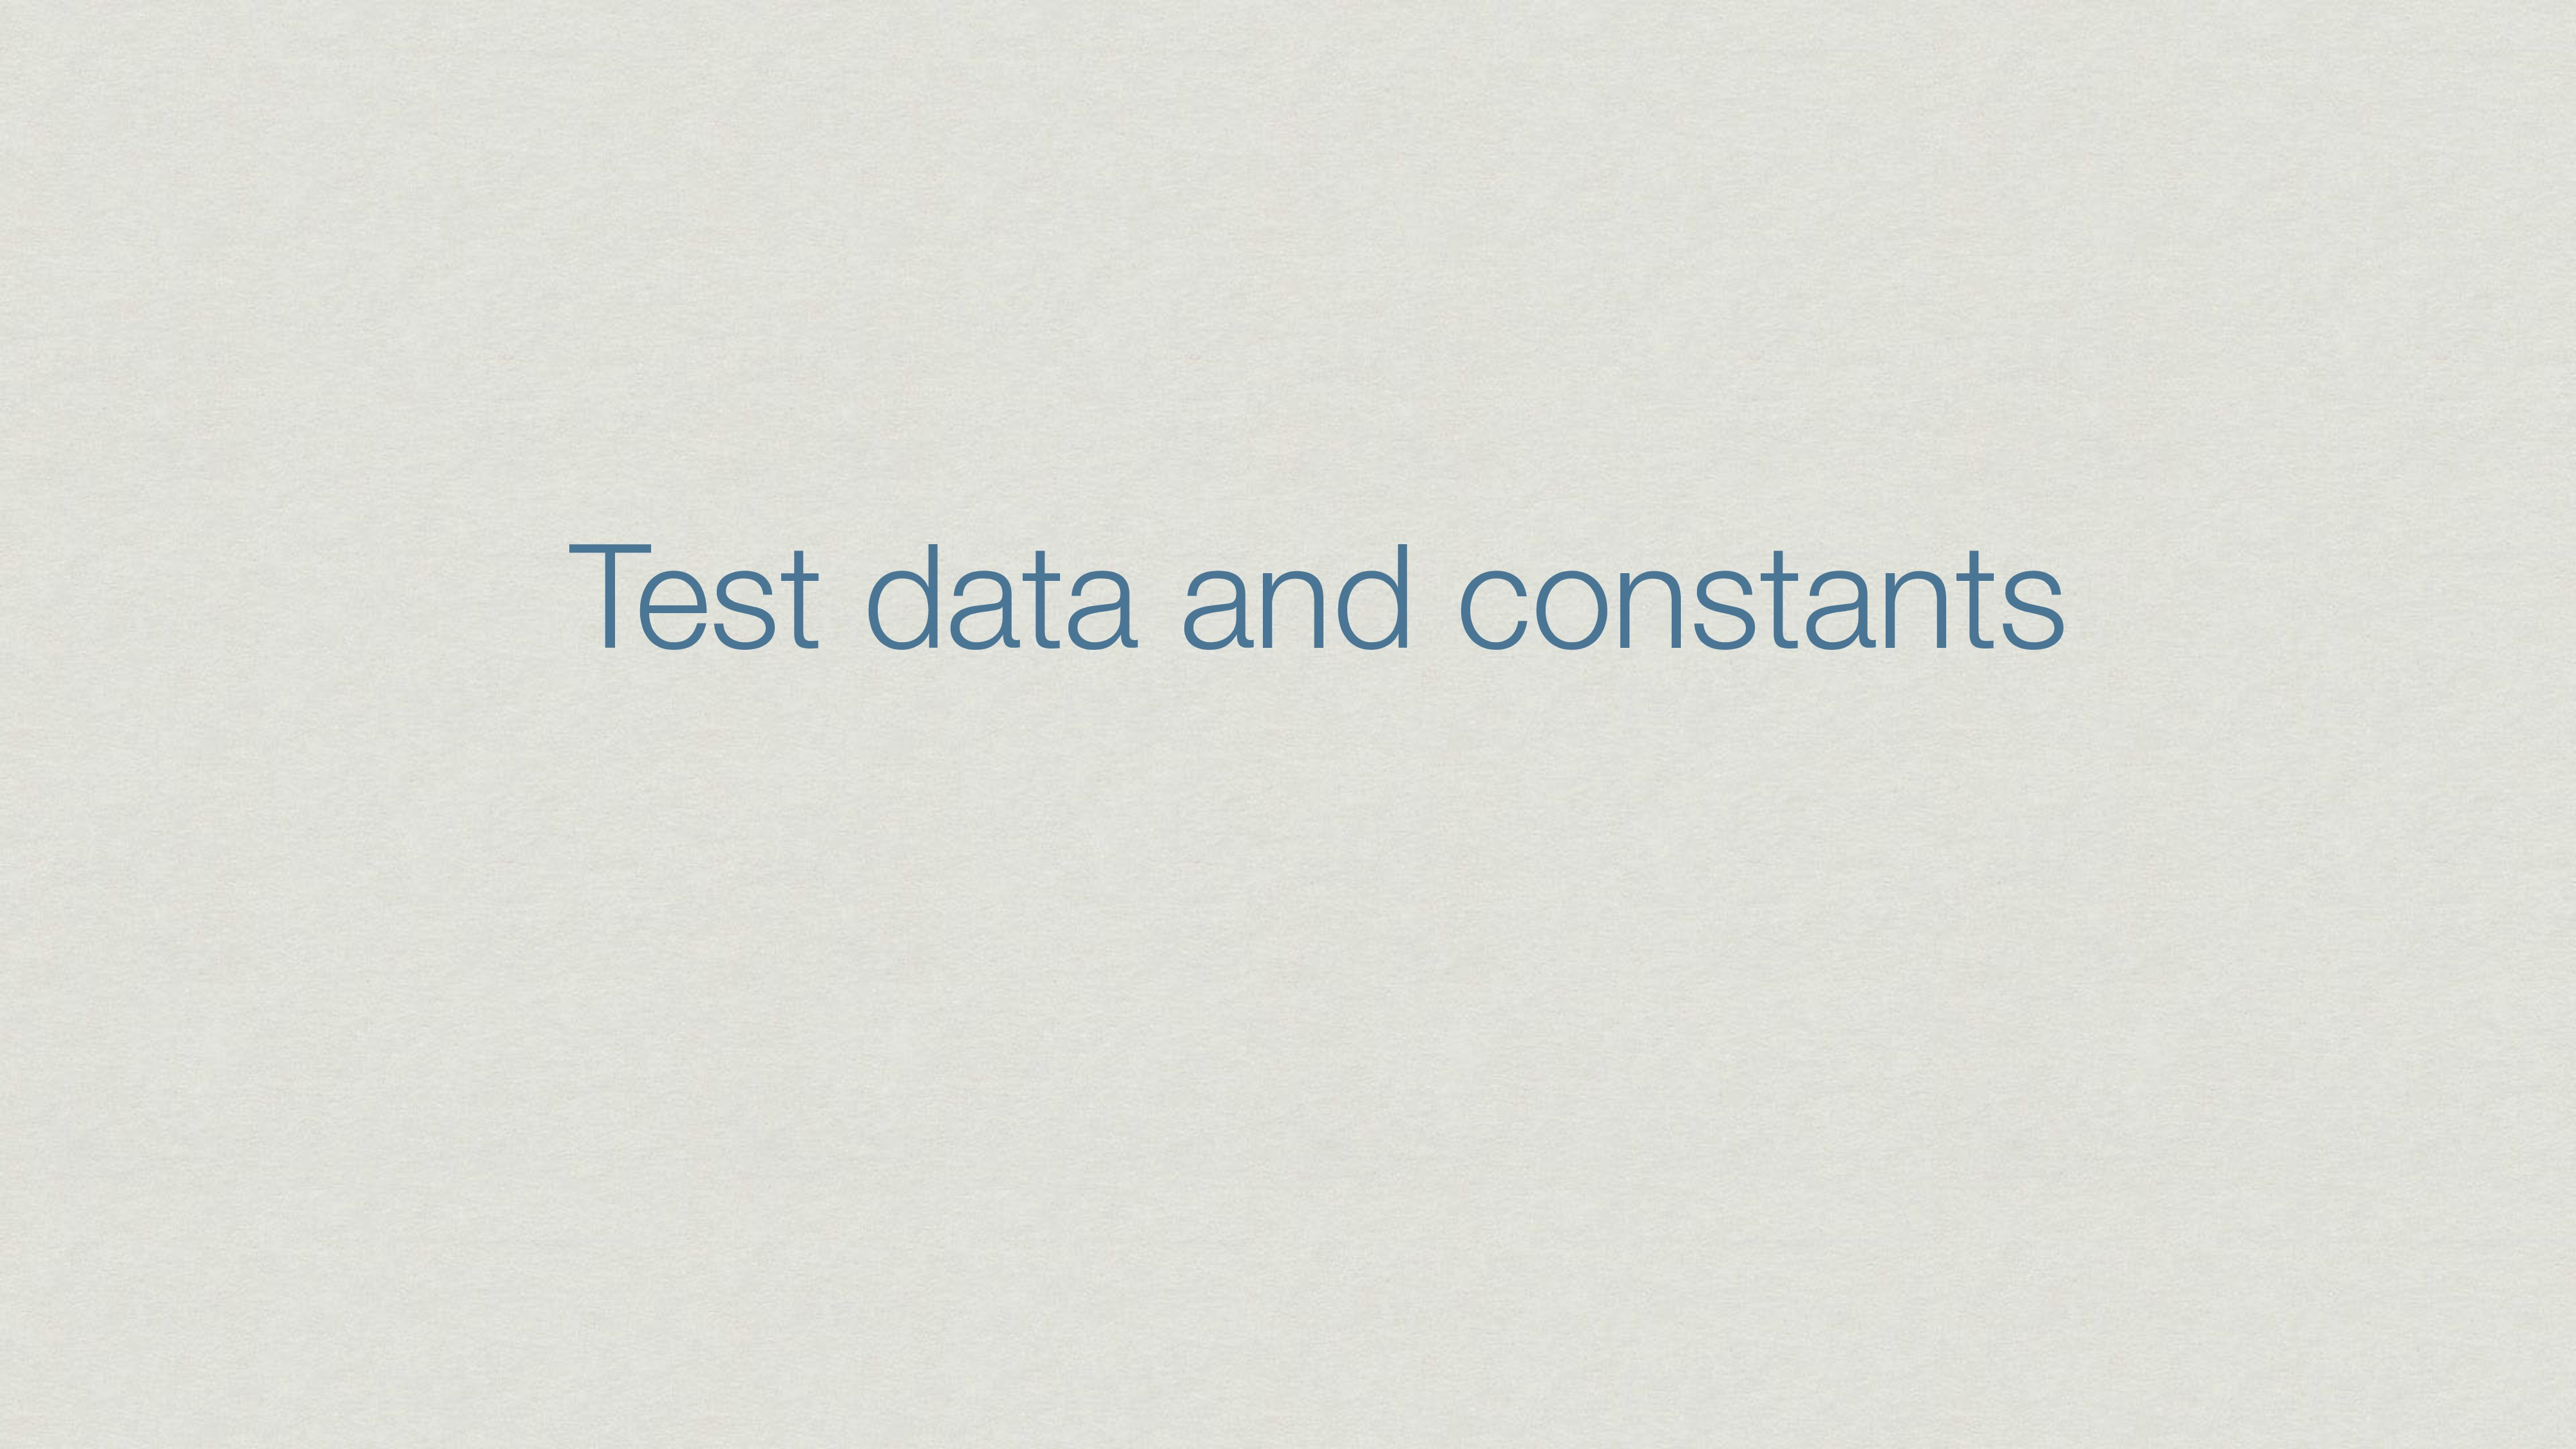 Test data and constants